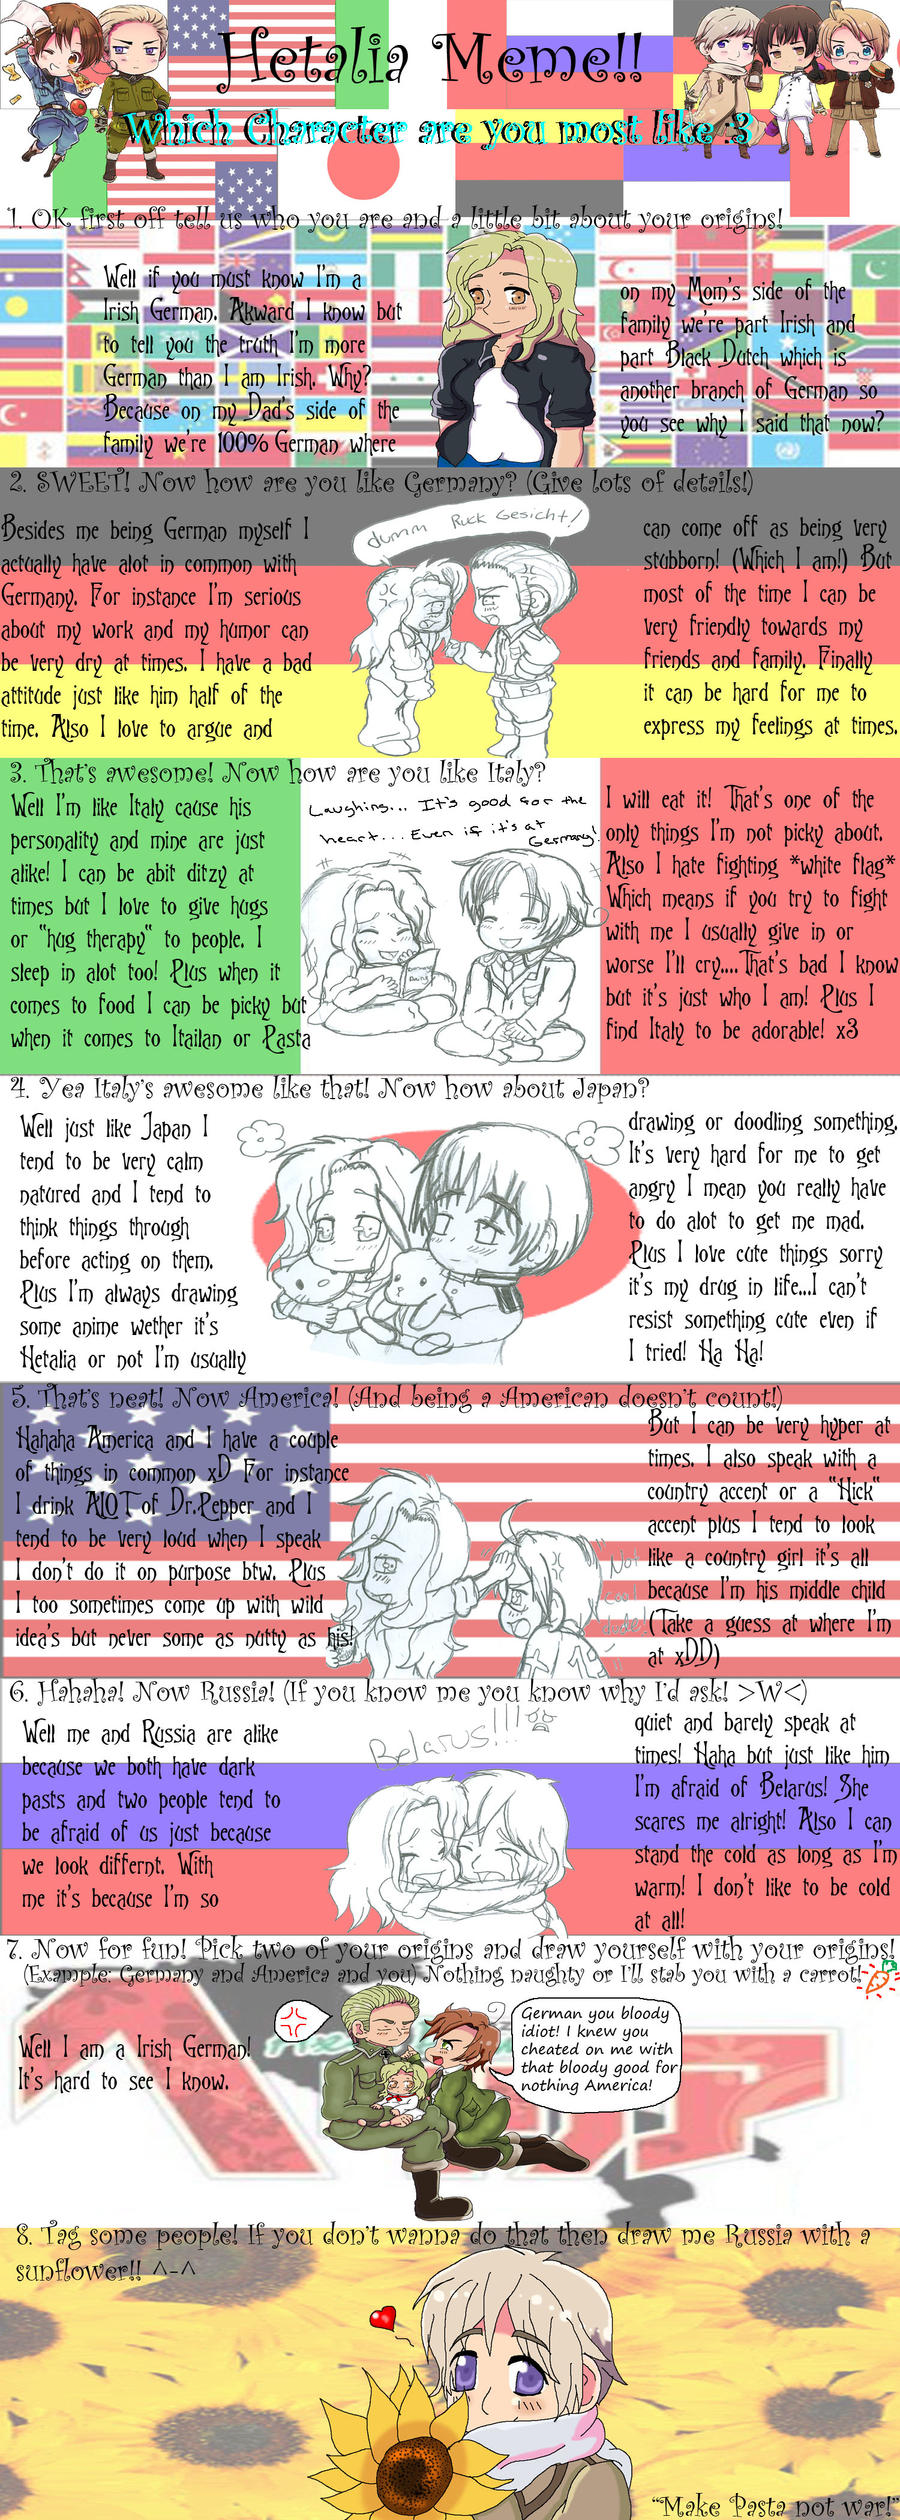 Hetalia Meme finished by Steampunky-Bunny-Boo